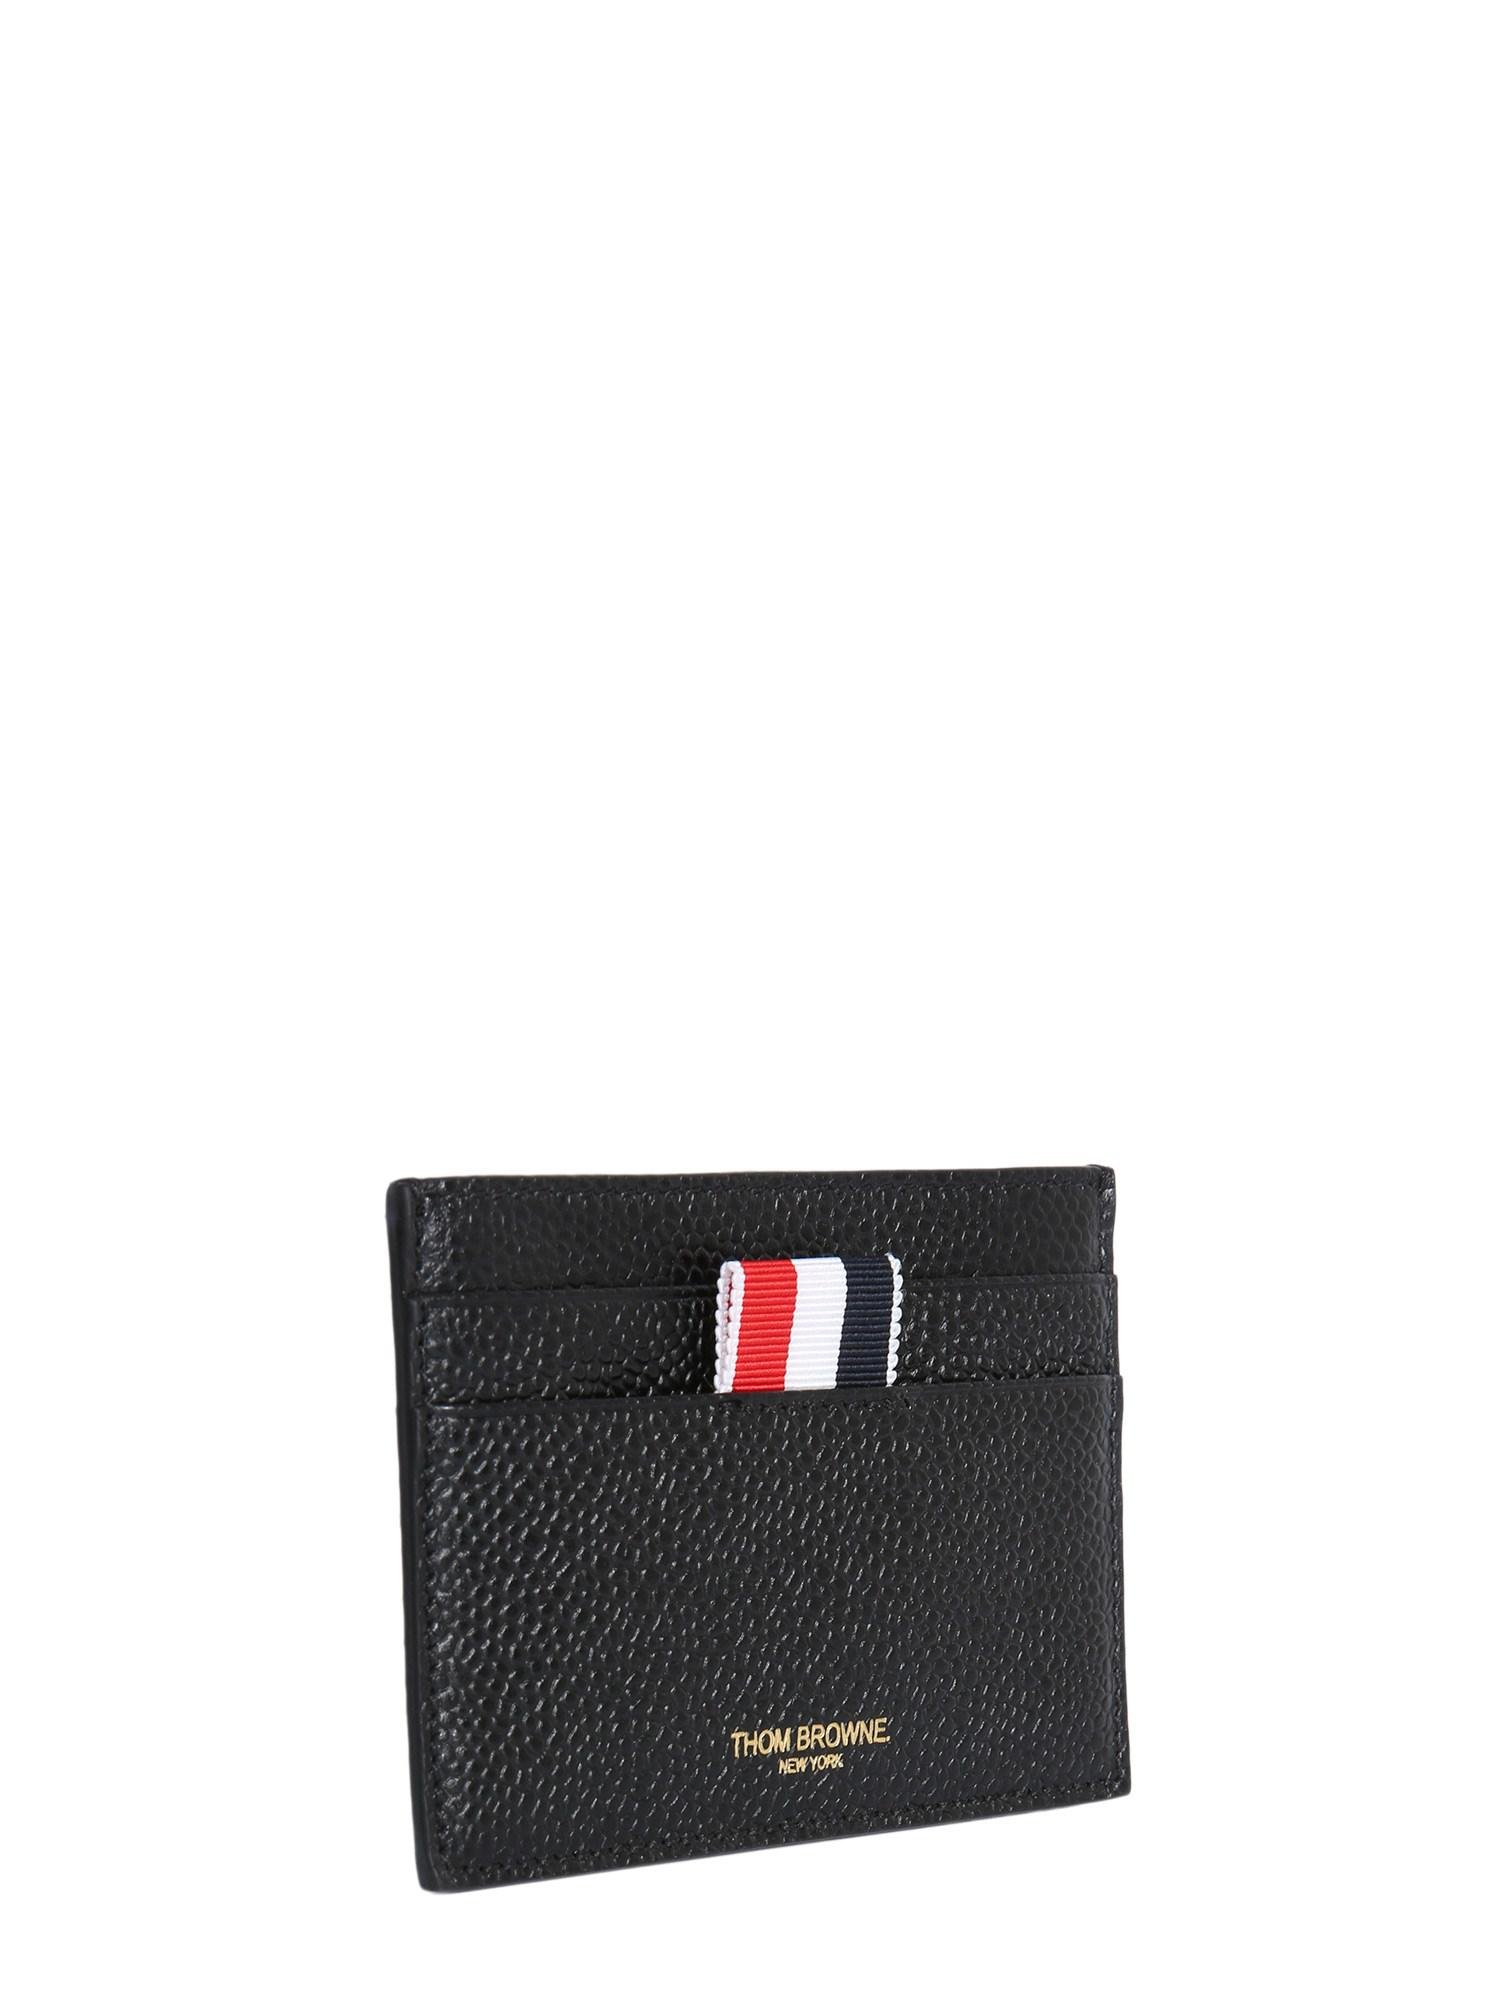 2b2ee7dca139 Lyst - Thom Browne Granulated Leather Card Holder With Grosgrain Details in  Black for Men - Save 23%